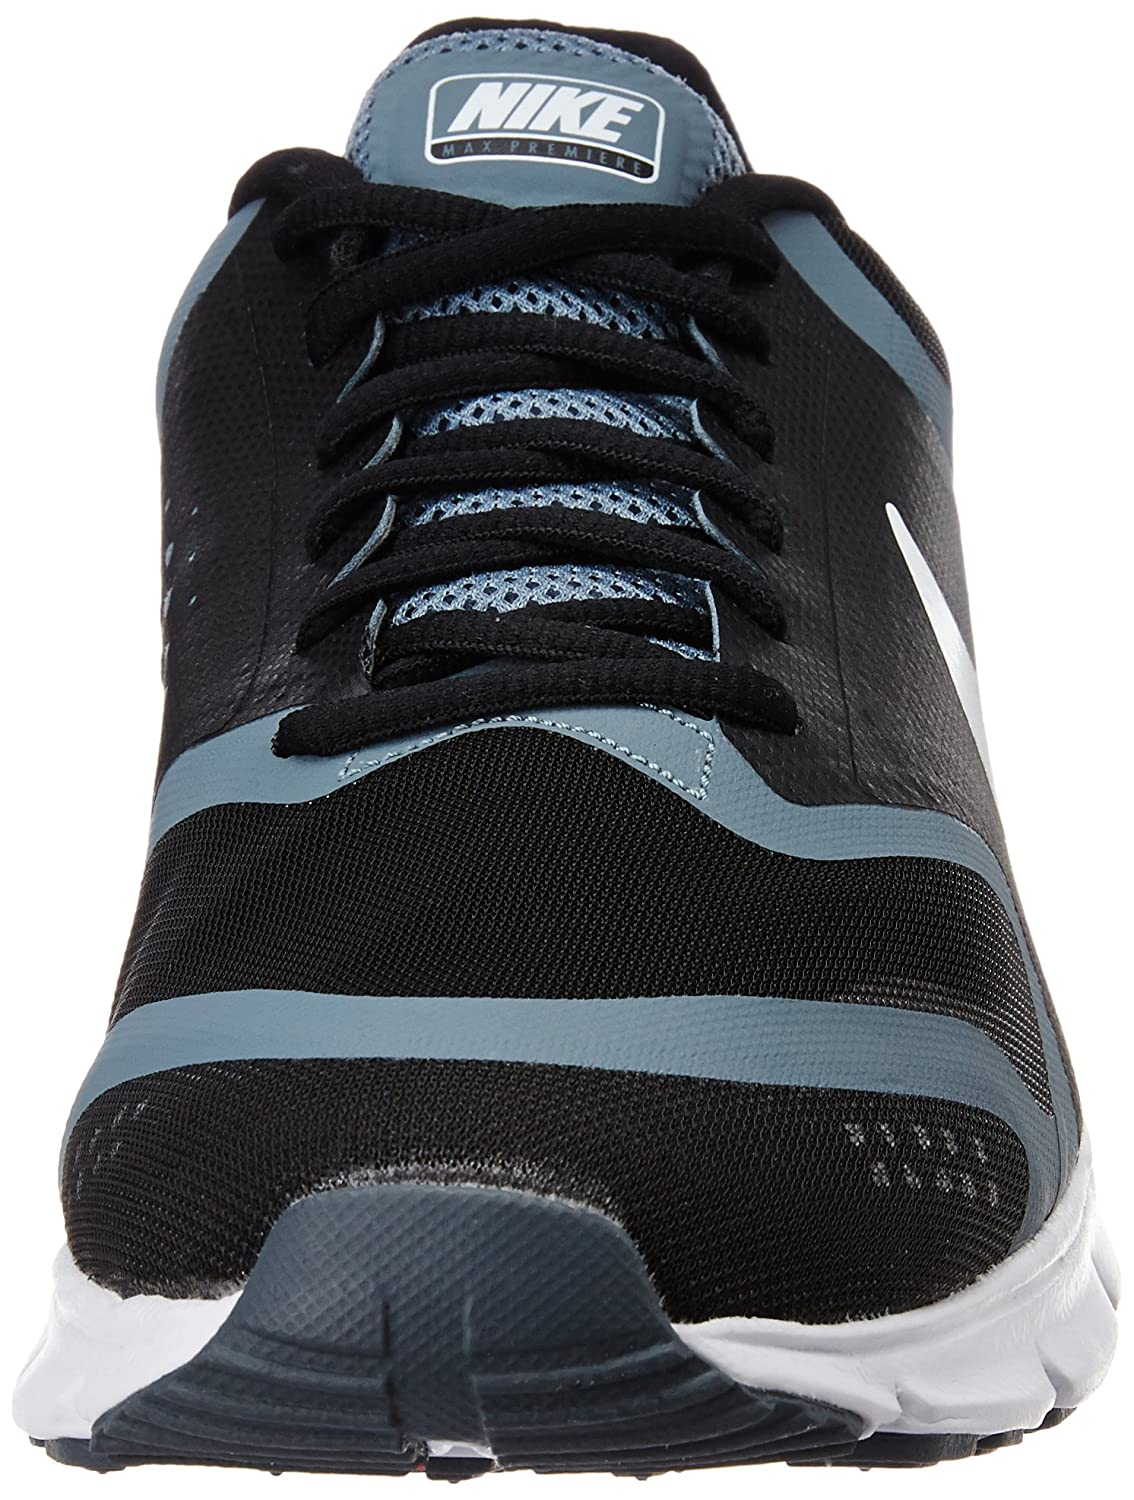 Nike Men's Air Max Premiere Run Black, White, Blue Graphite Running Shoes  -7 UK/India (41 EU)(8 US): Buy Online at Low Prices in India - Amazon.in